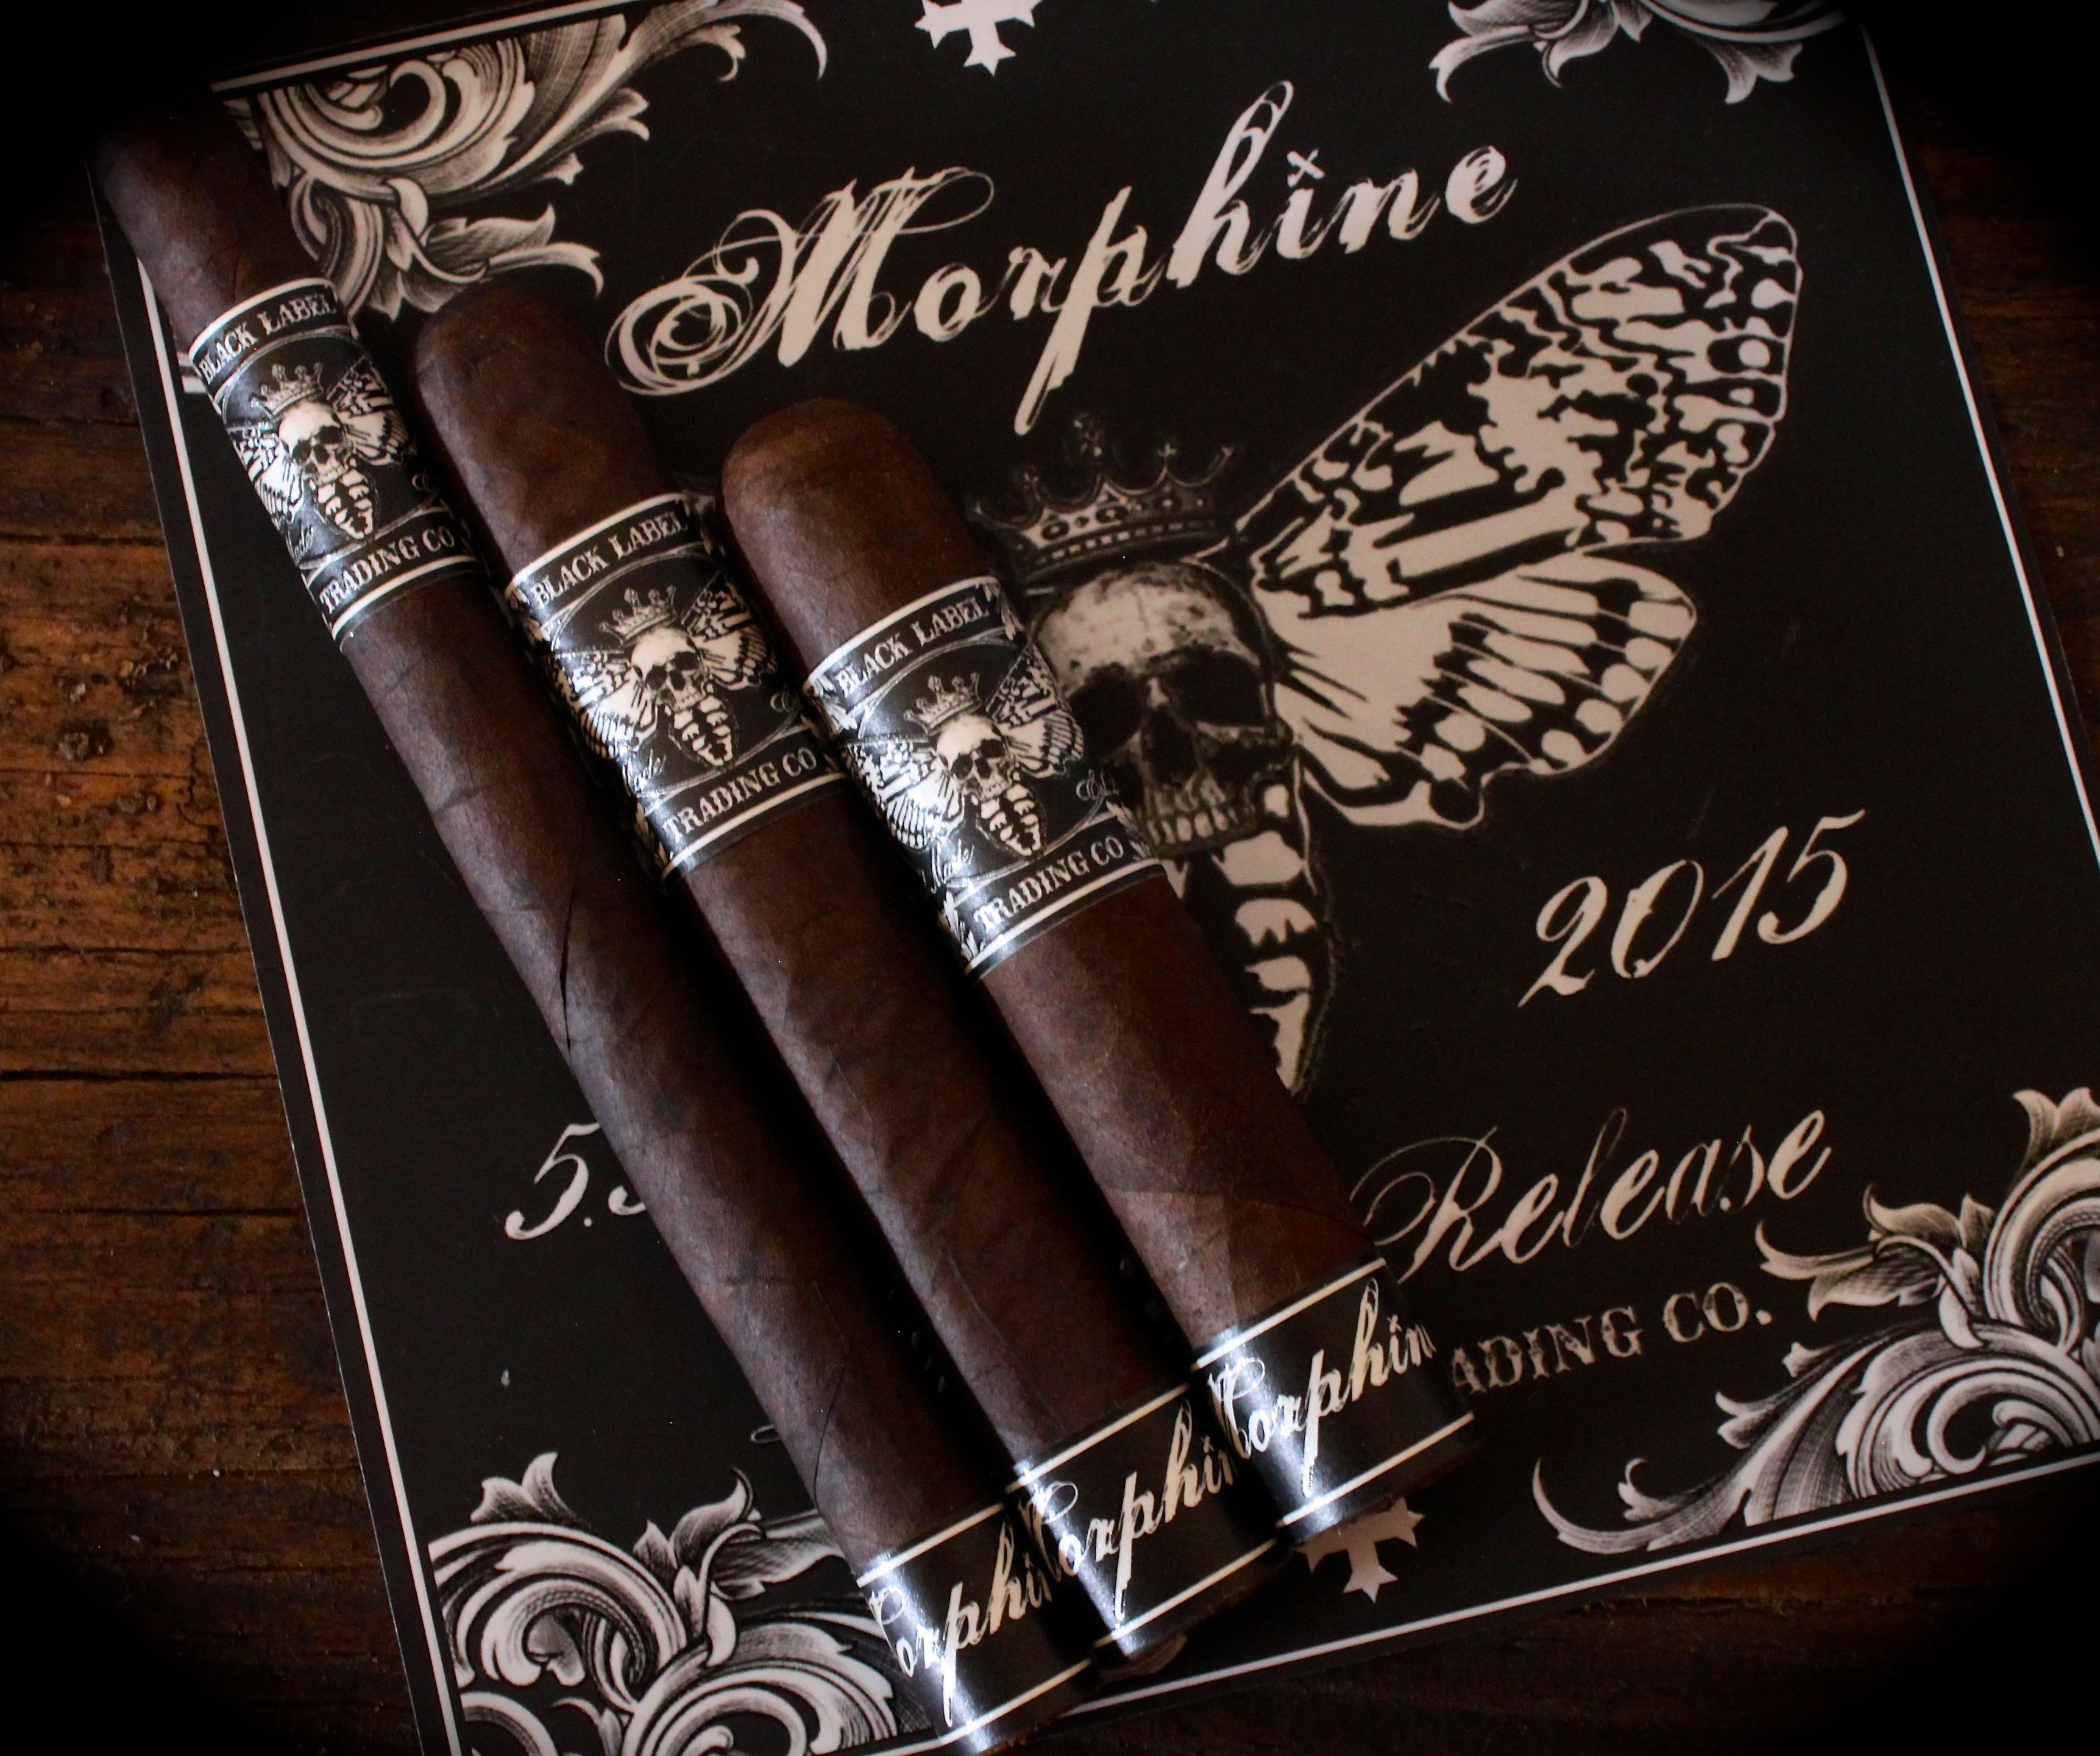 Cigar News: Black Label Trading Company Morphine Returns for 2015